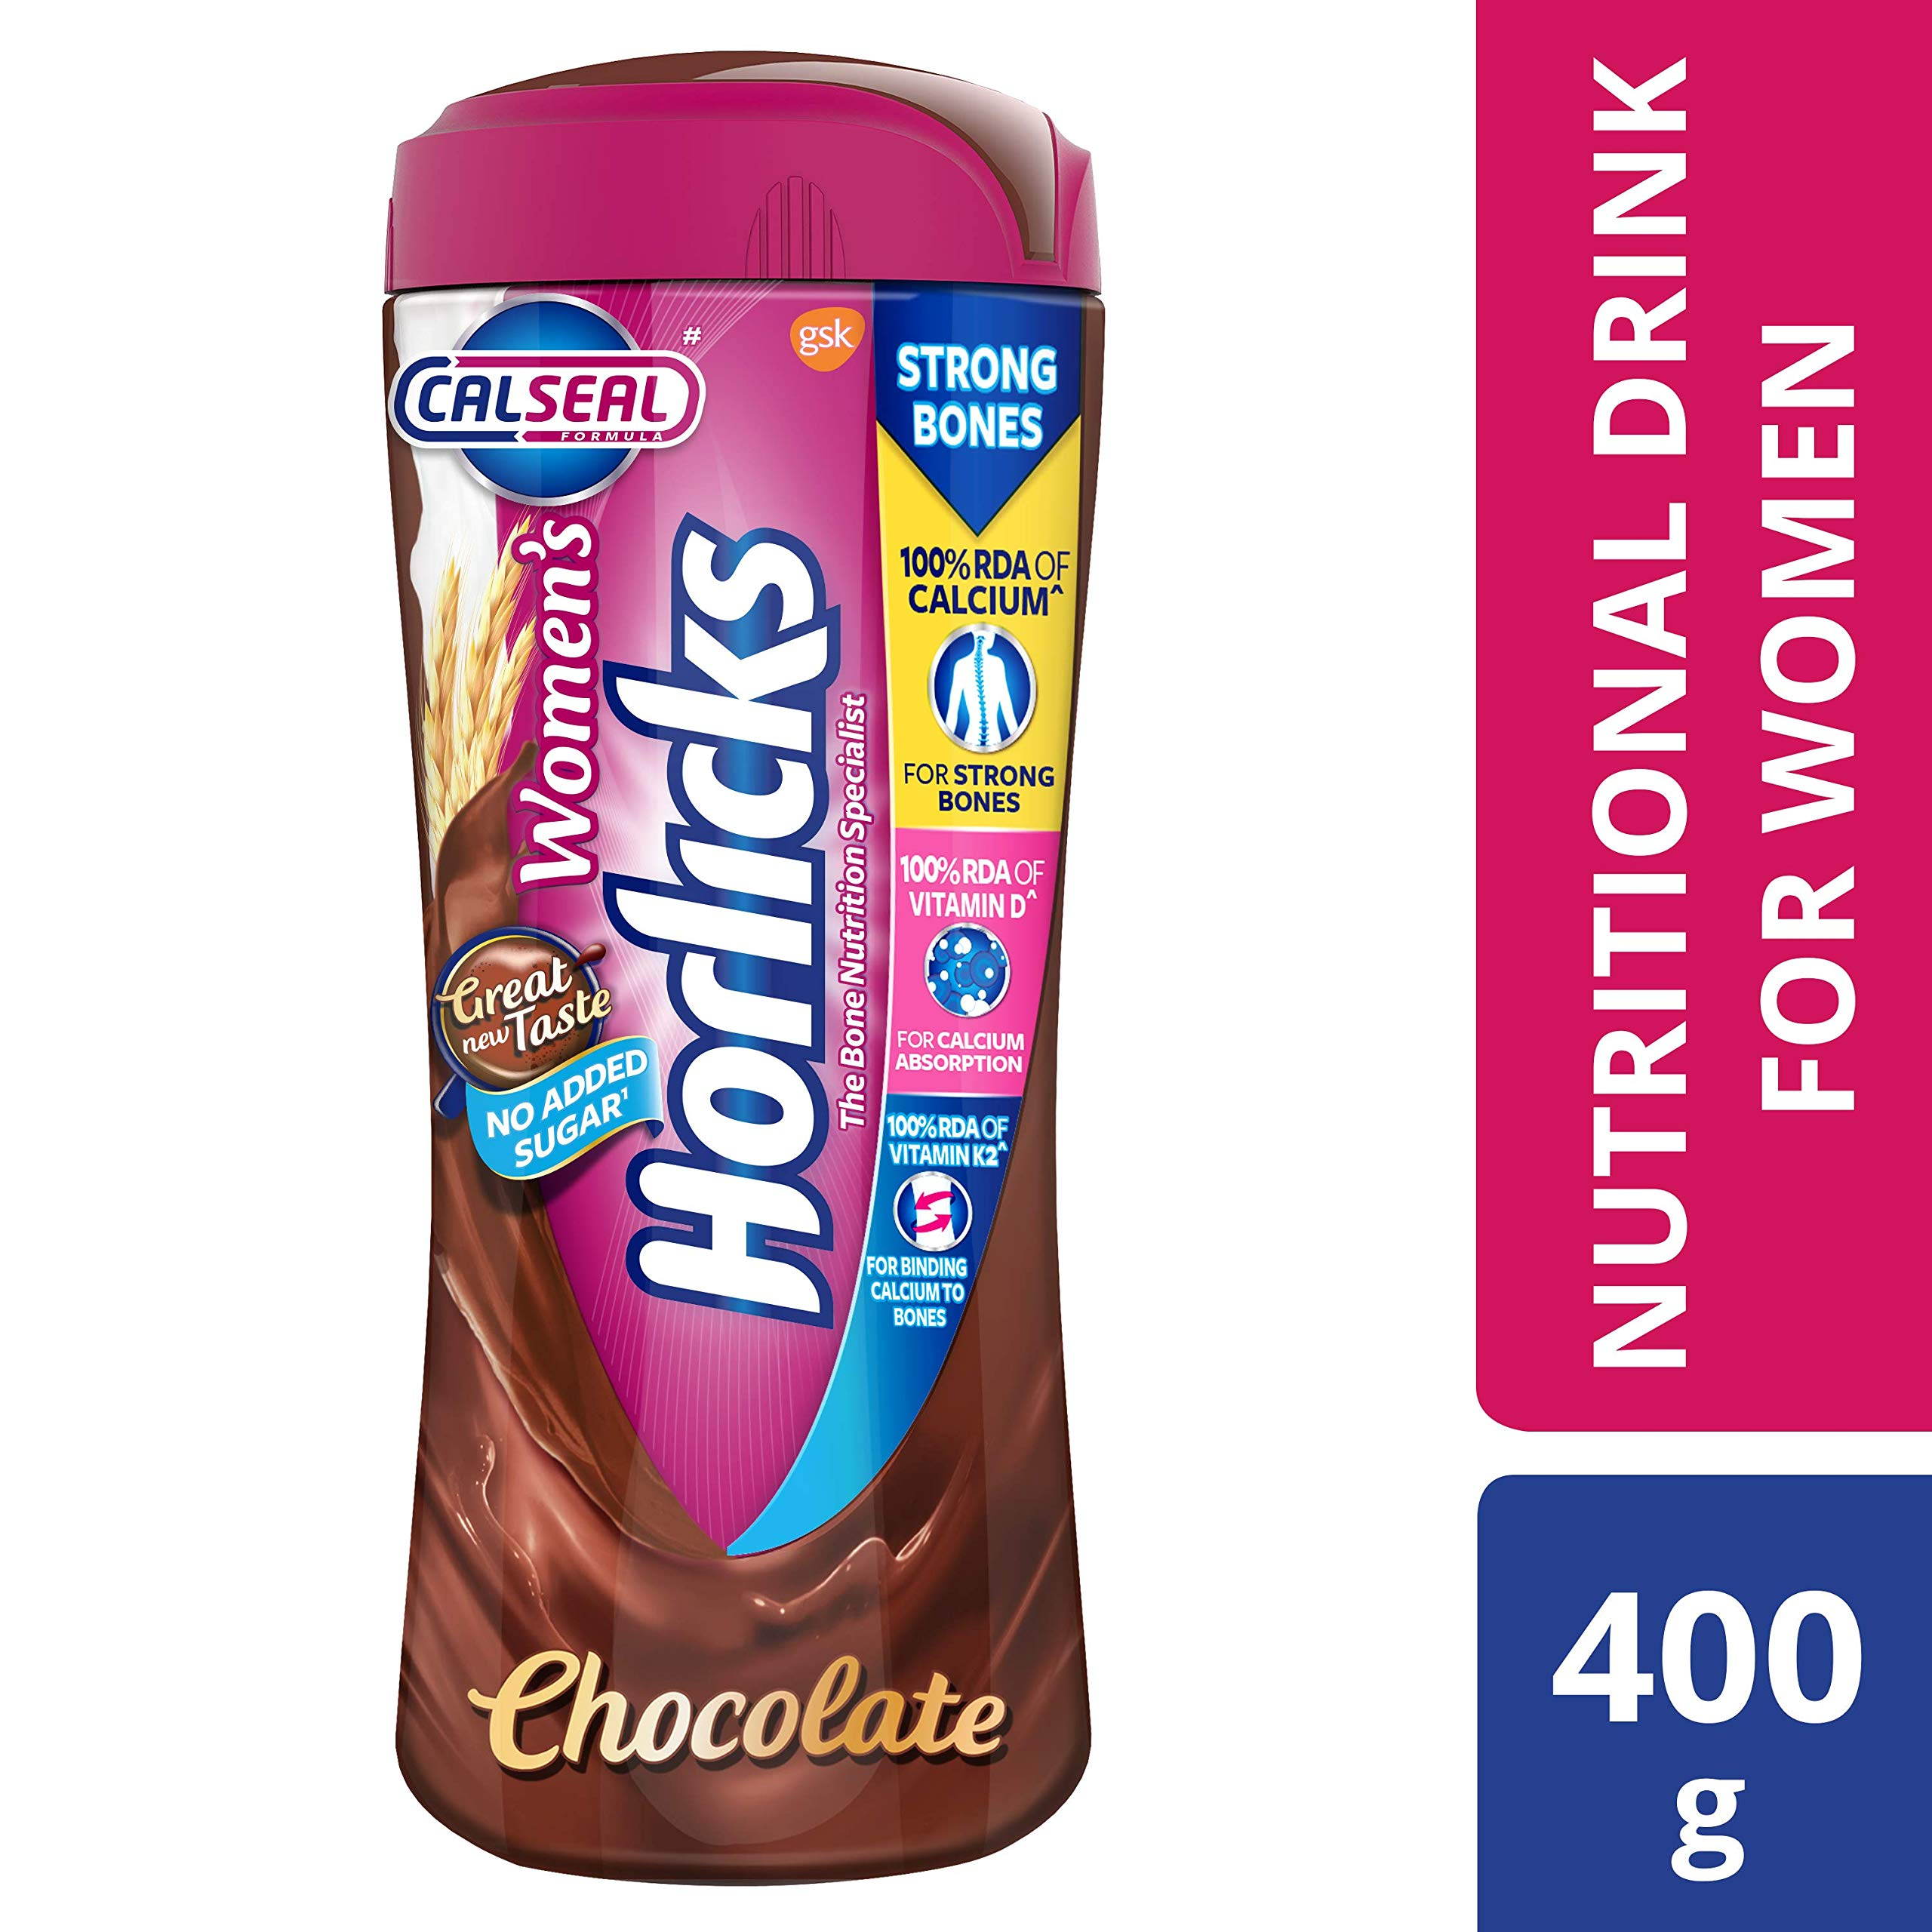 Horlicks Women's Health and Nutrition drink - 400g (Chocolate flavor) product image